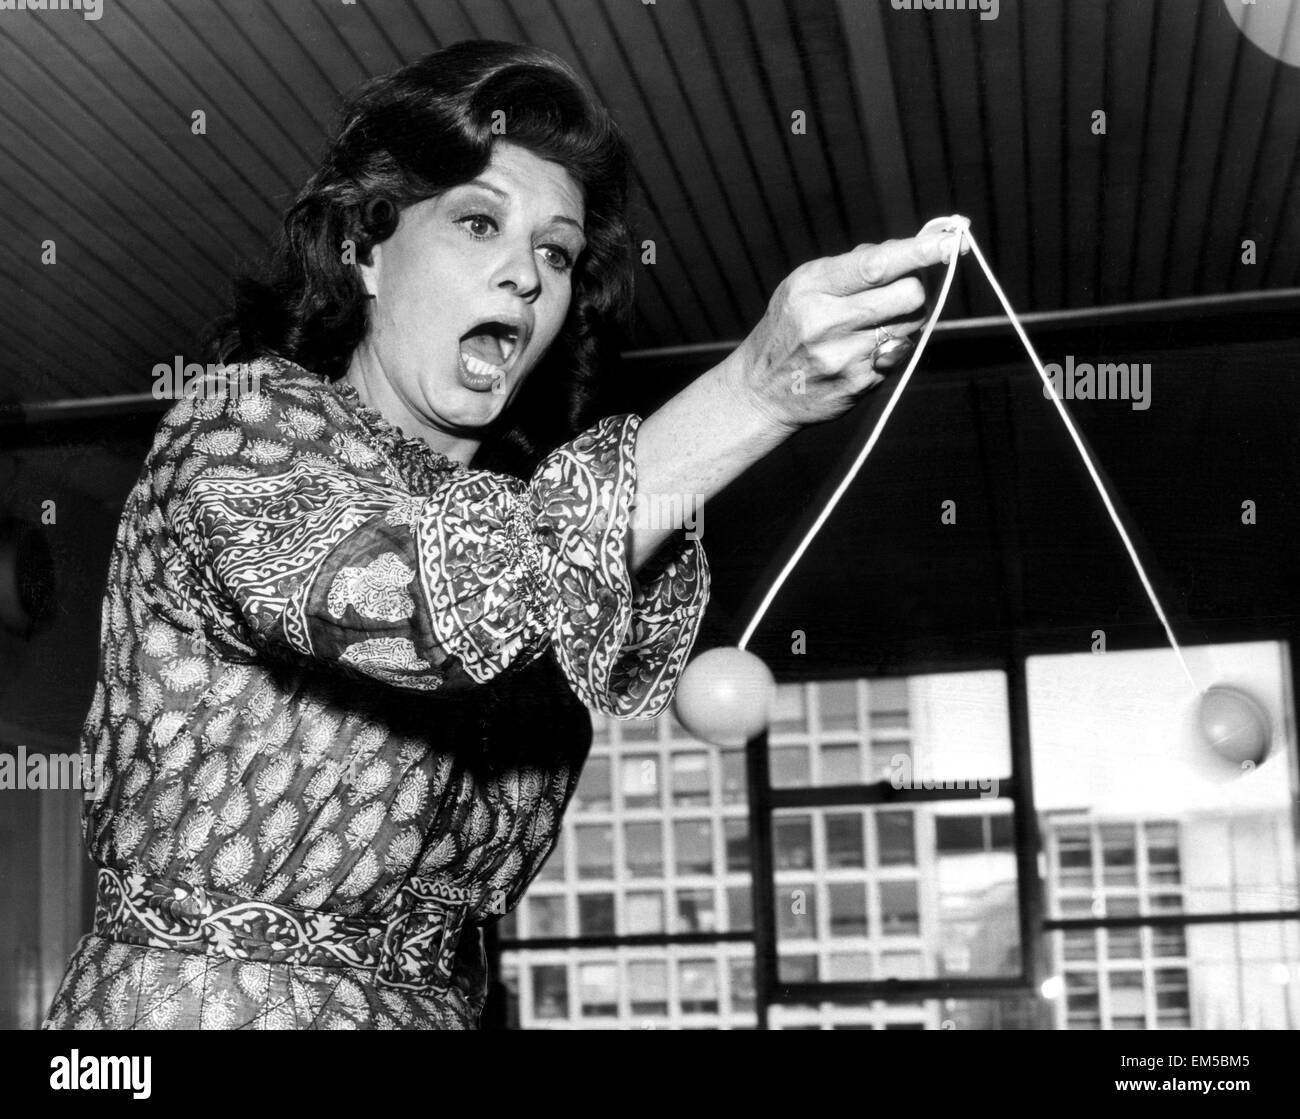 Model Caroline Munroe tries to get to grips with the latest craze, the Ker-knockers. 20th August 1971. - Stock Image